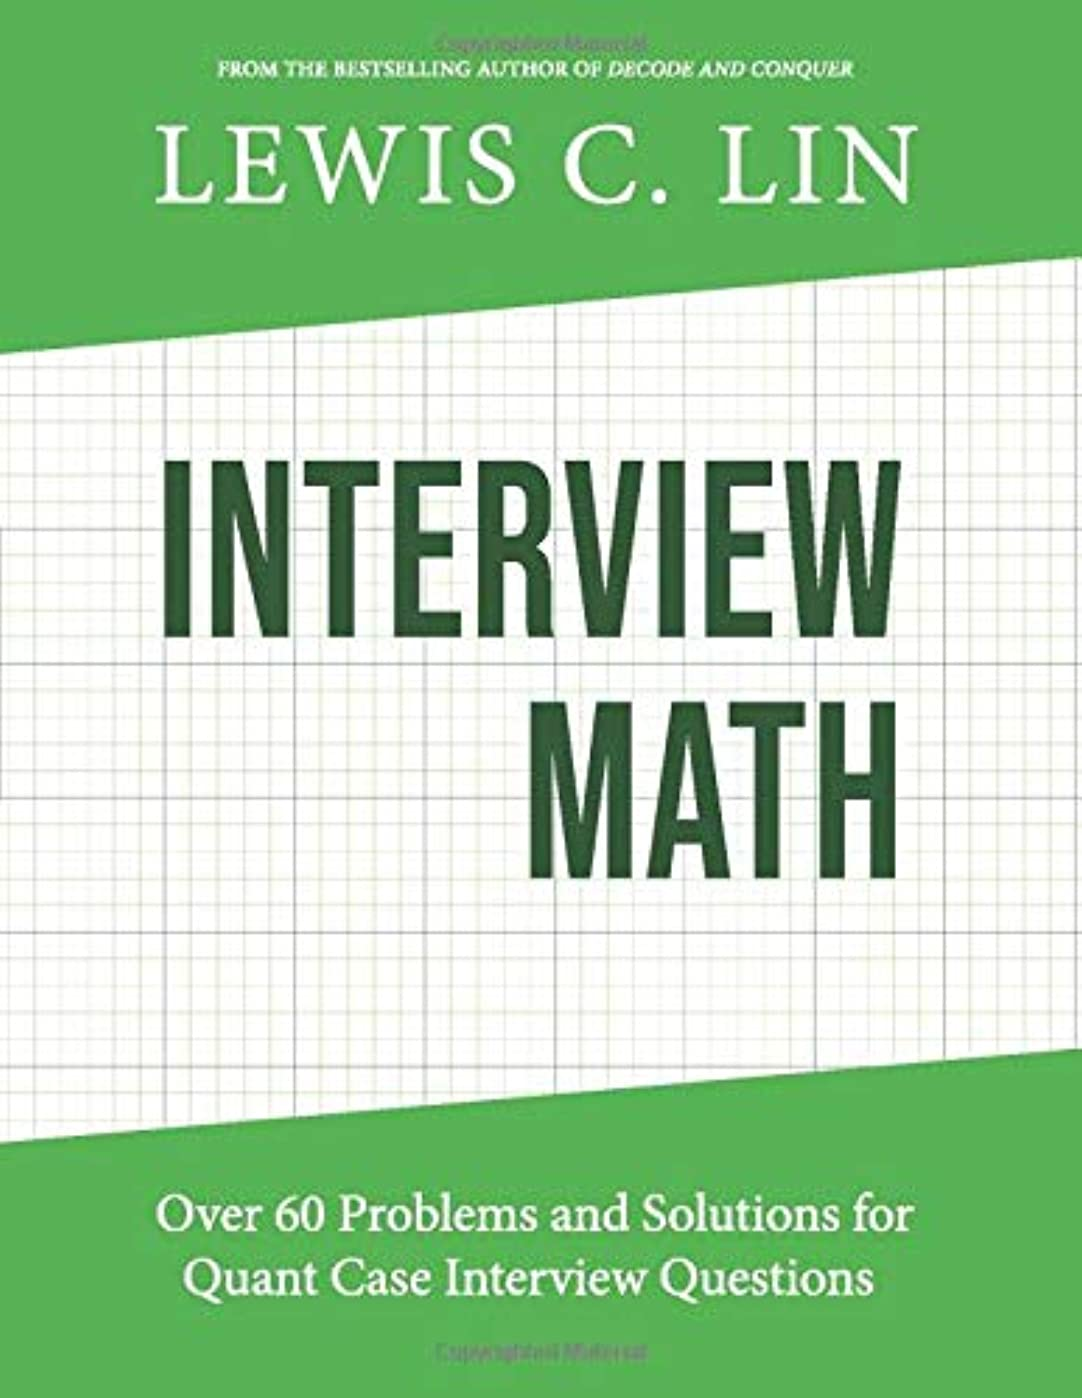 思い出除外する学校Interview Math: Over 60 Problems and Solutions for Quant Case Interview Questions